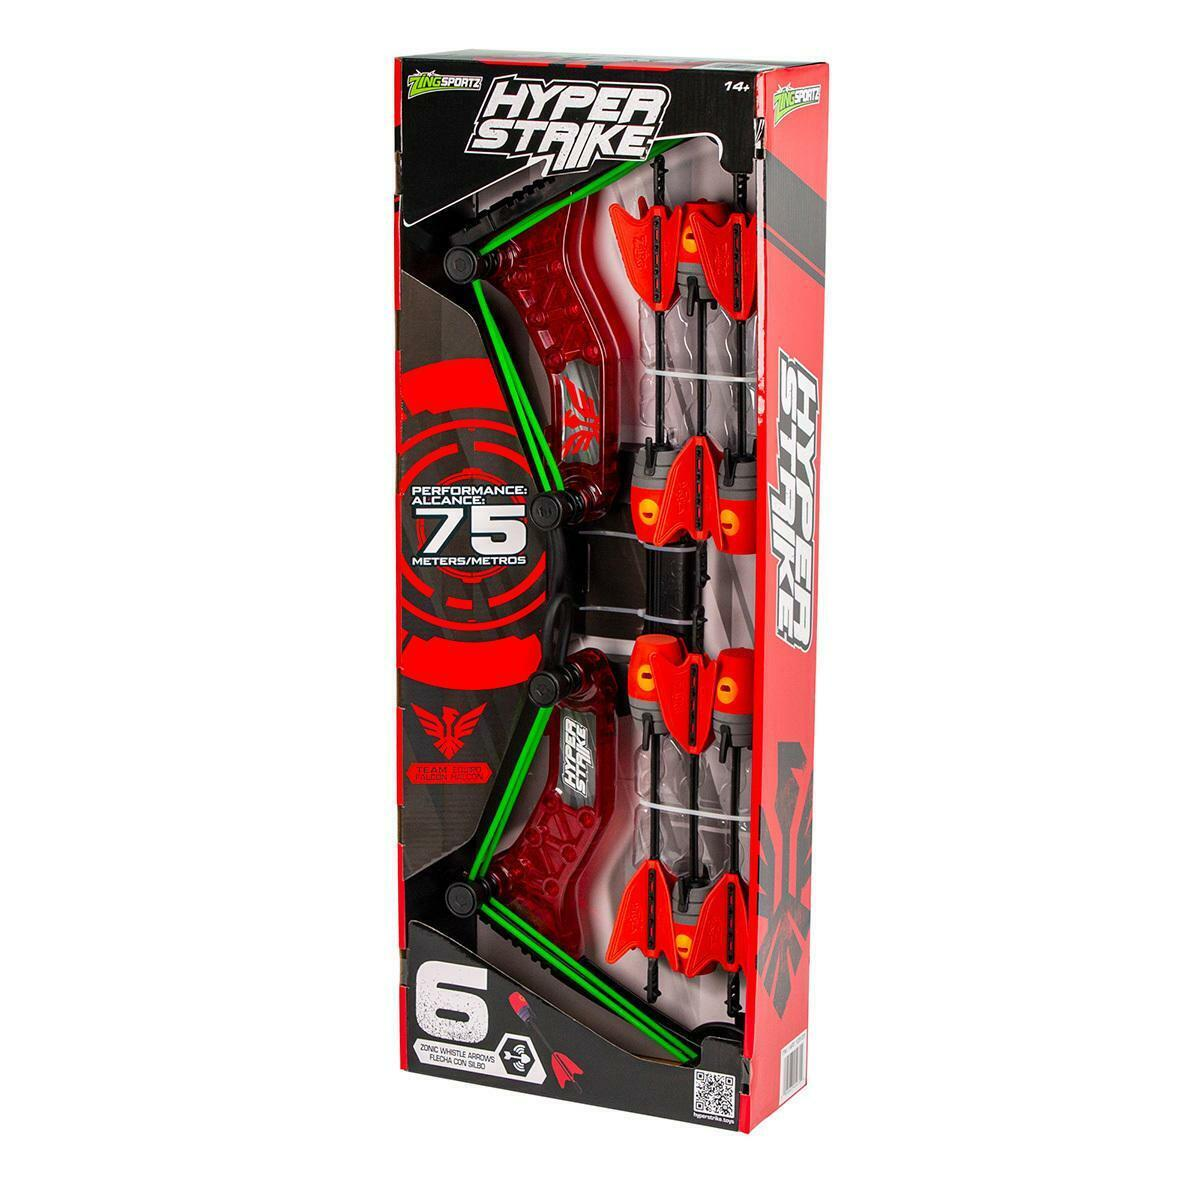 Hyper Strike Bow And Zonic Whistle Arrows, Red NEW - $31.00